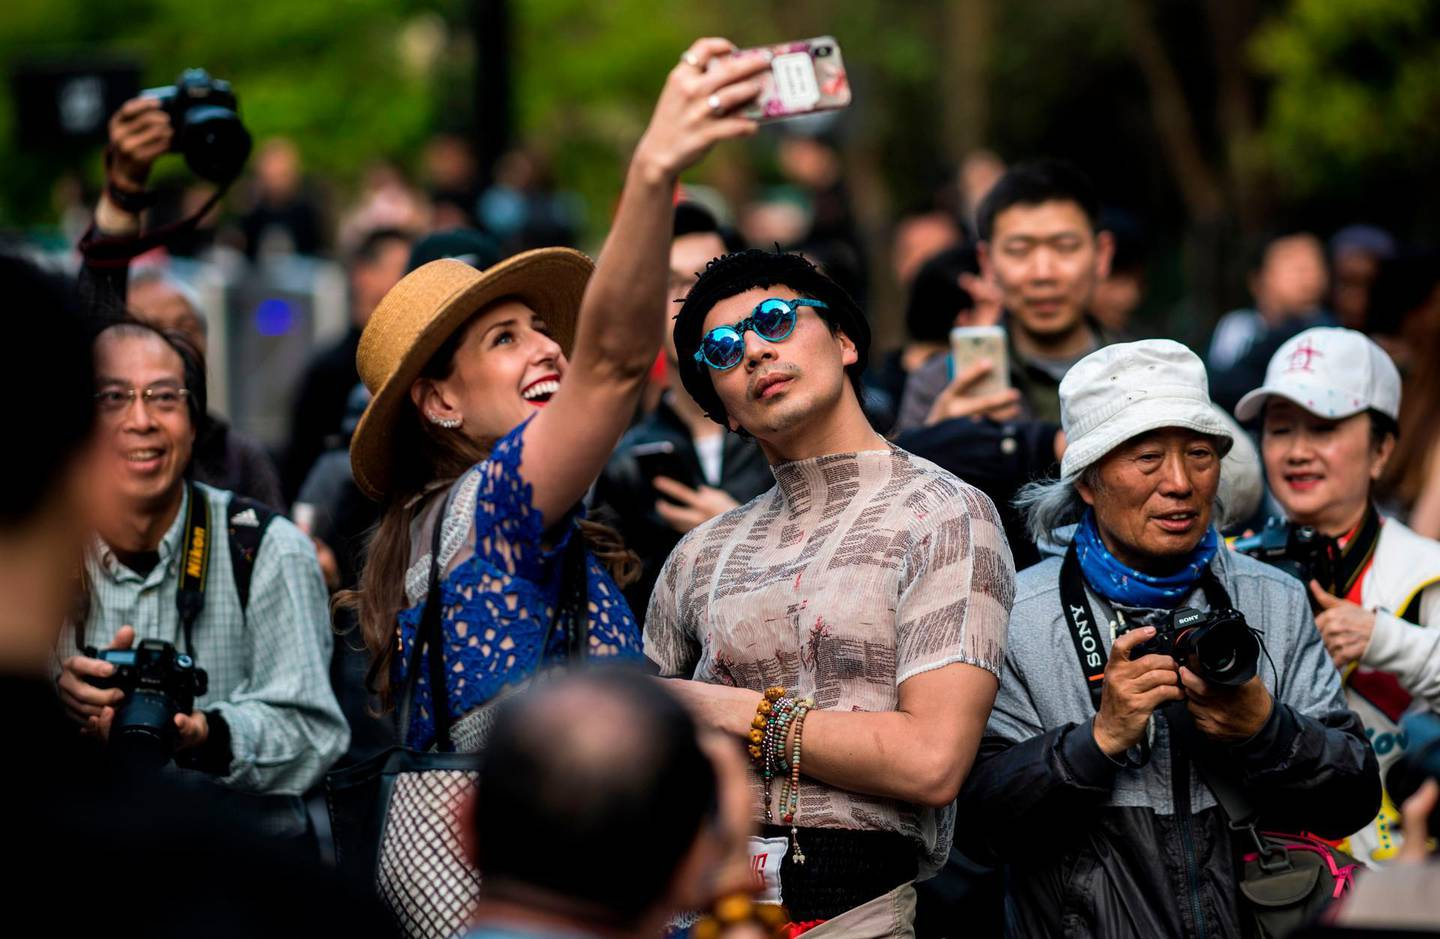 A couple poses for a selfie as they arrive at the Shanghai Fashion Week in Shanghai on March 31, 2018. / AFP PHOTO / Johannes EISELE